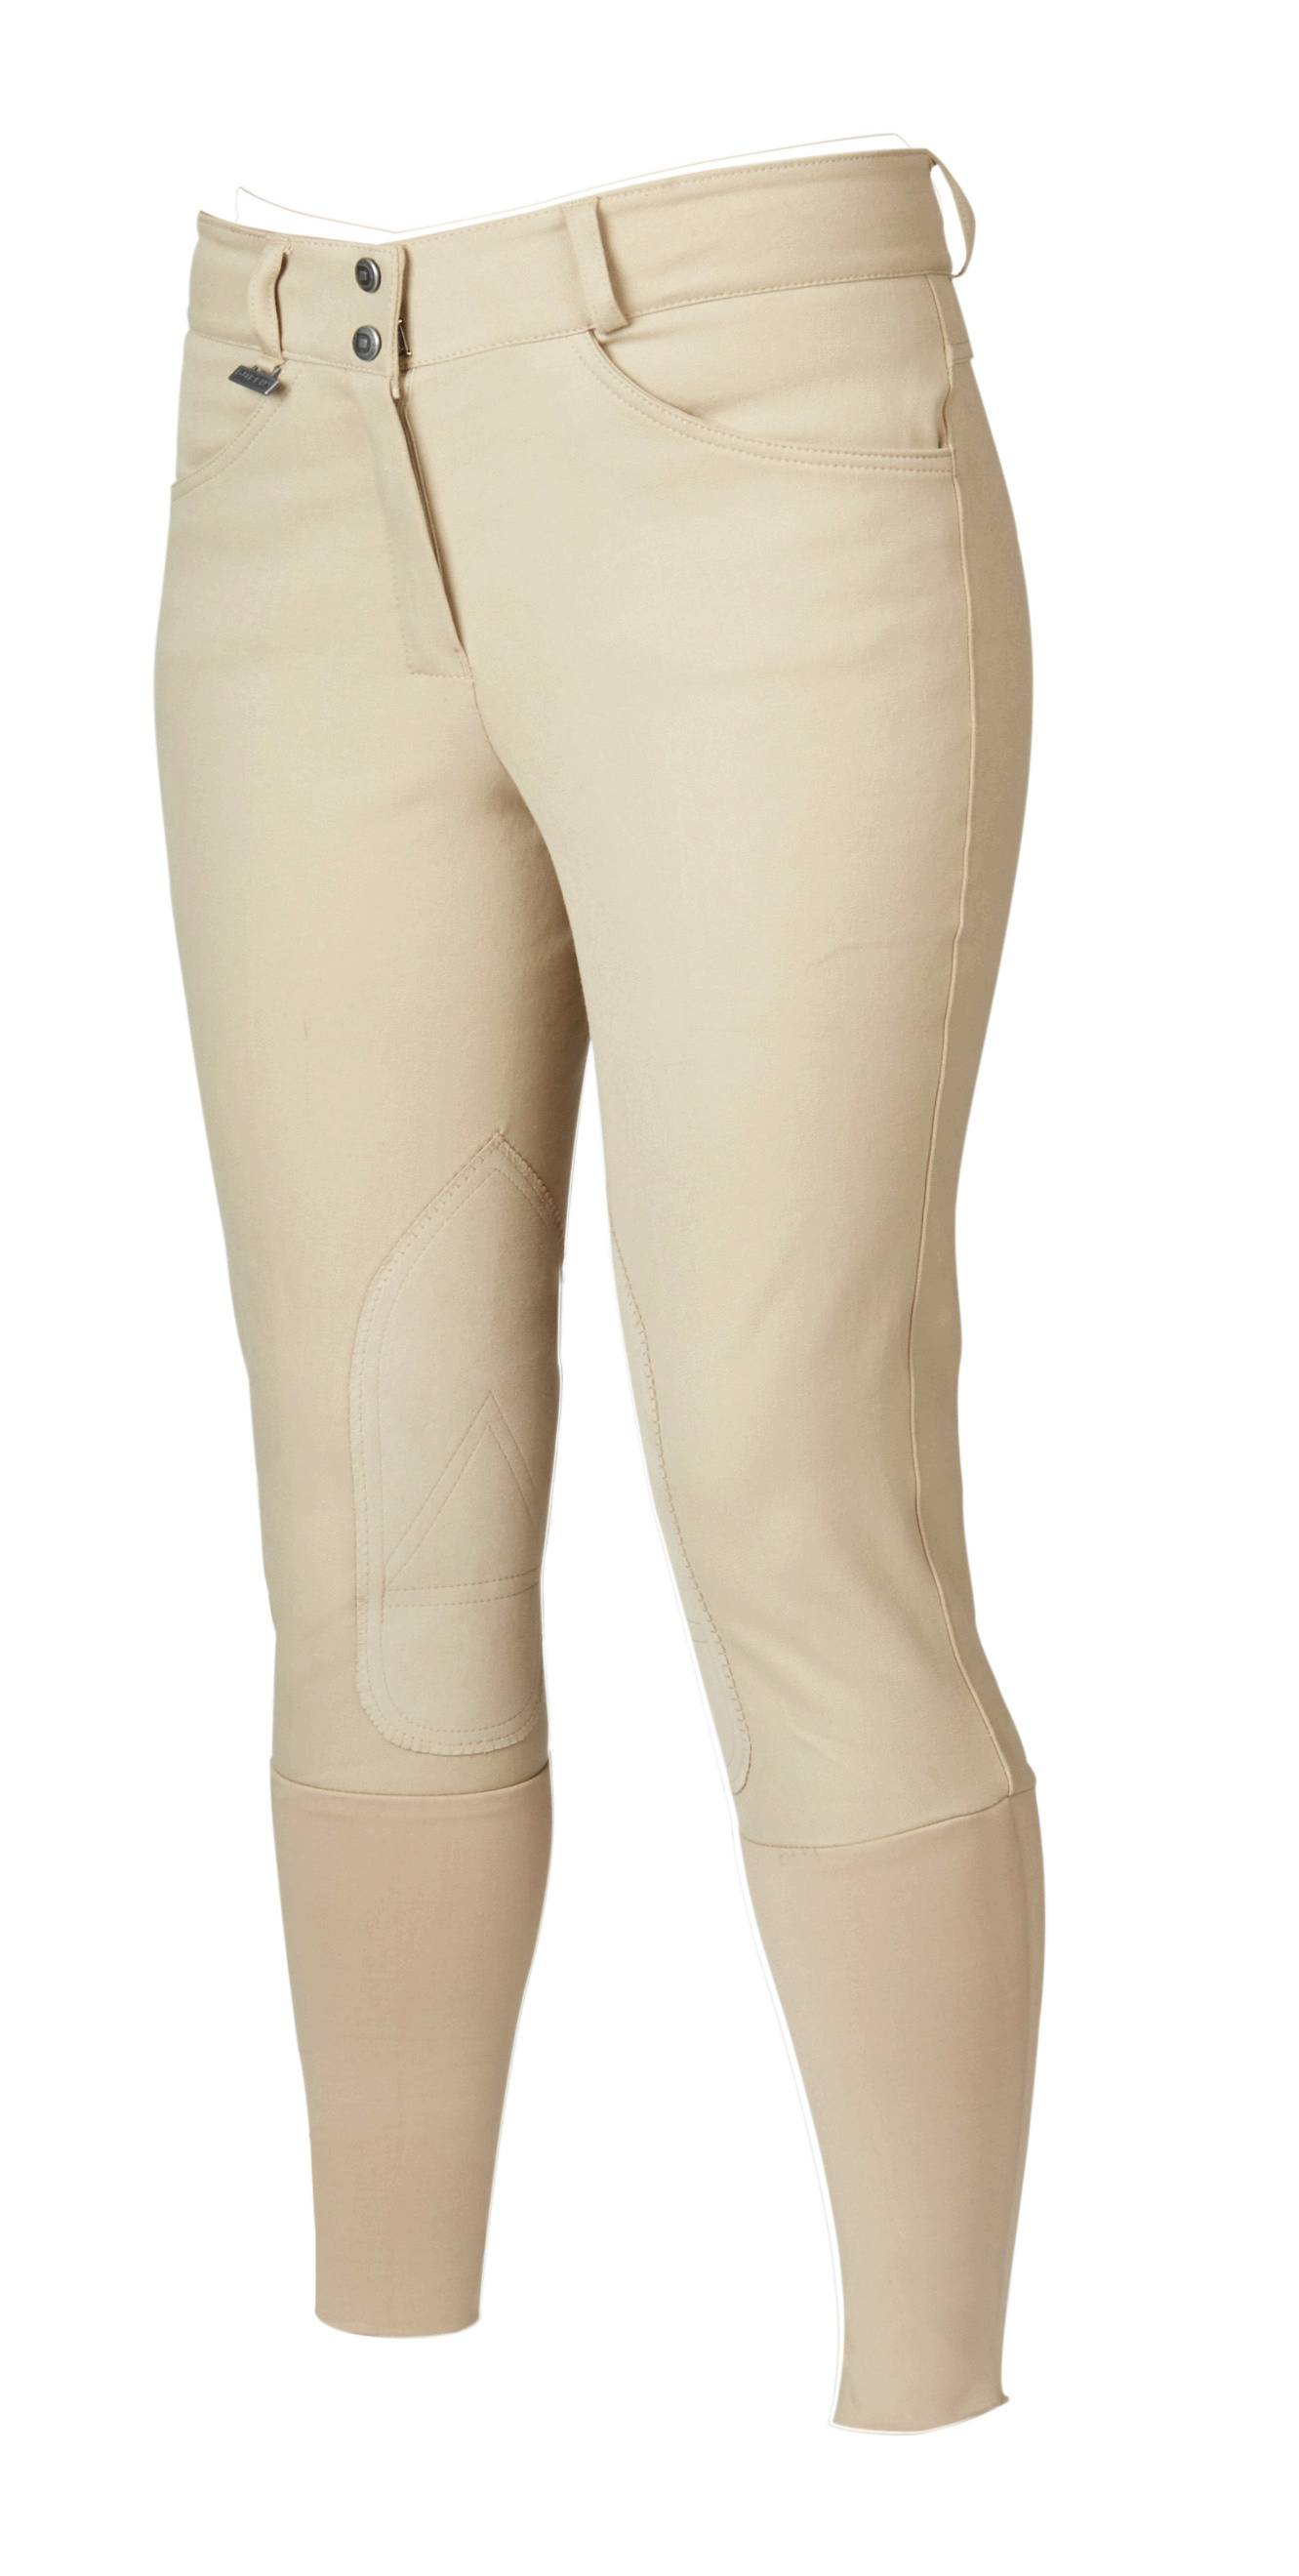 Dublin Active Signature Euroseat Breeches - Ladies